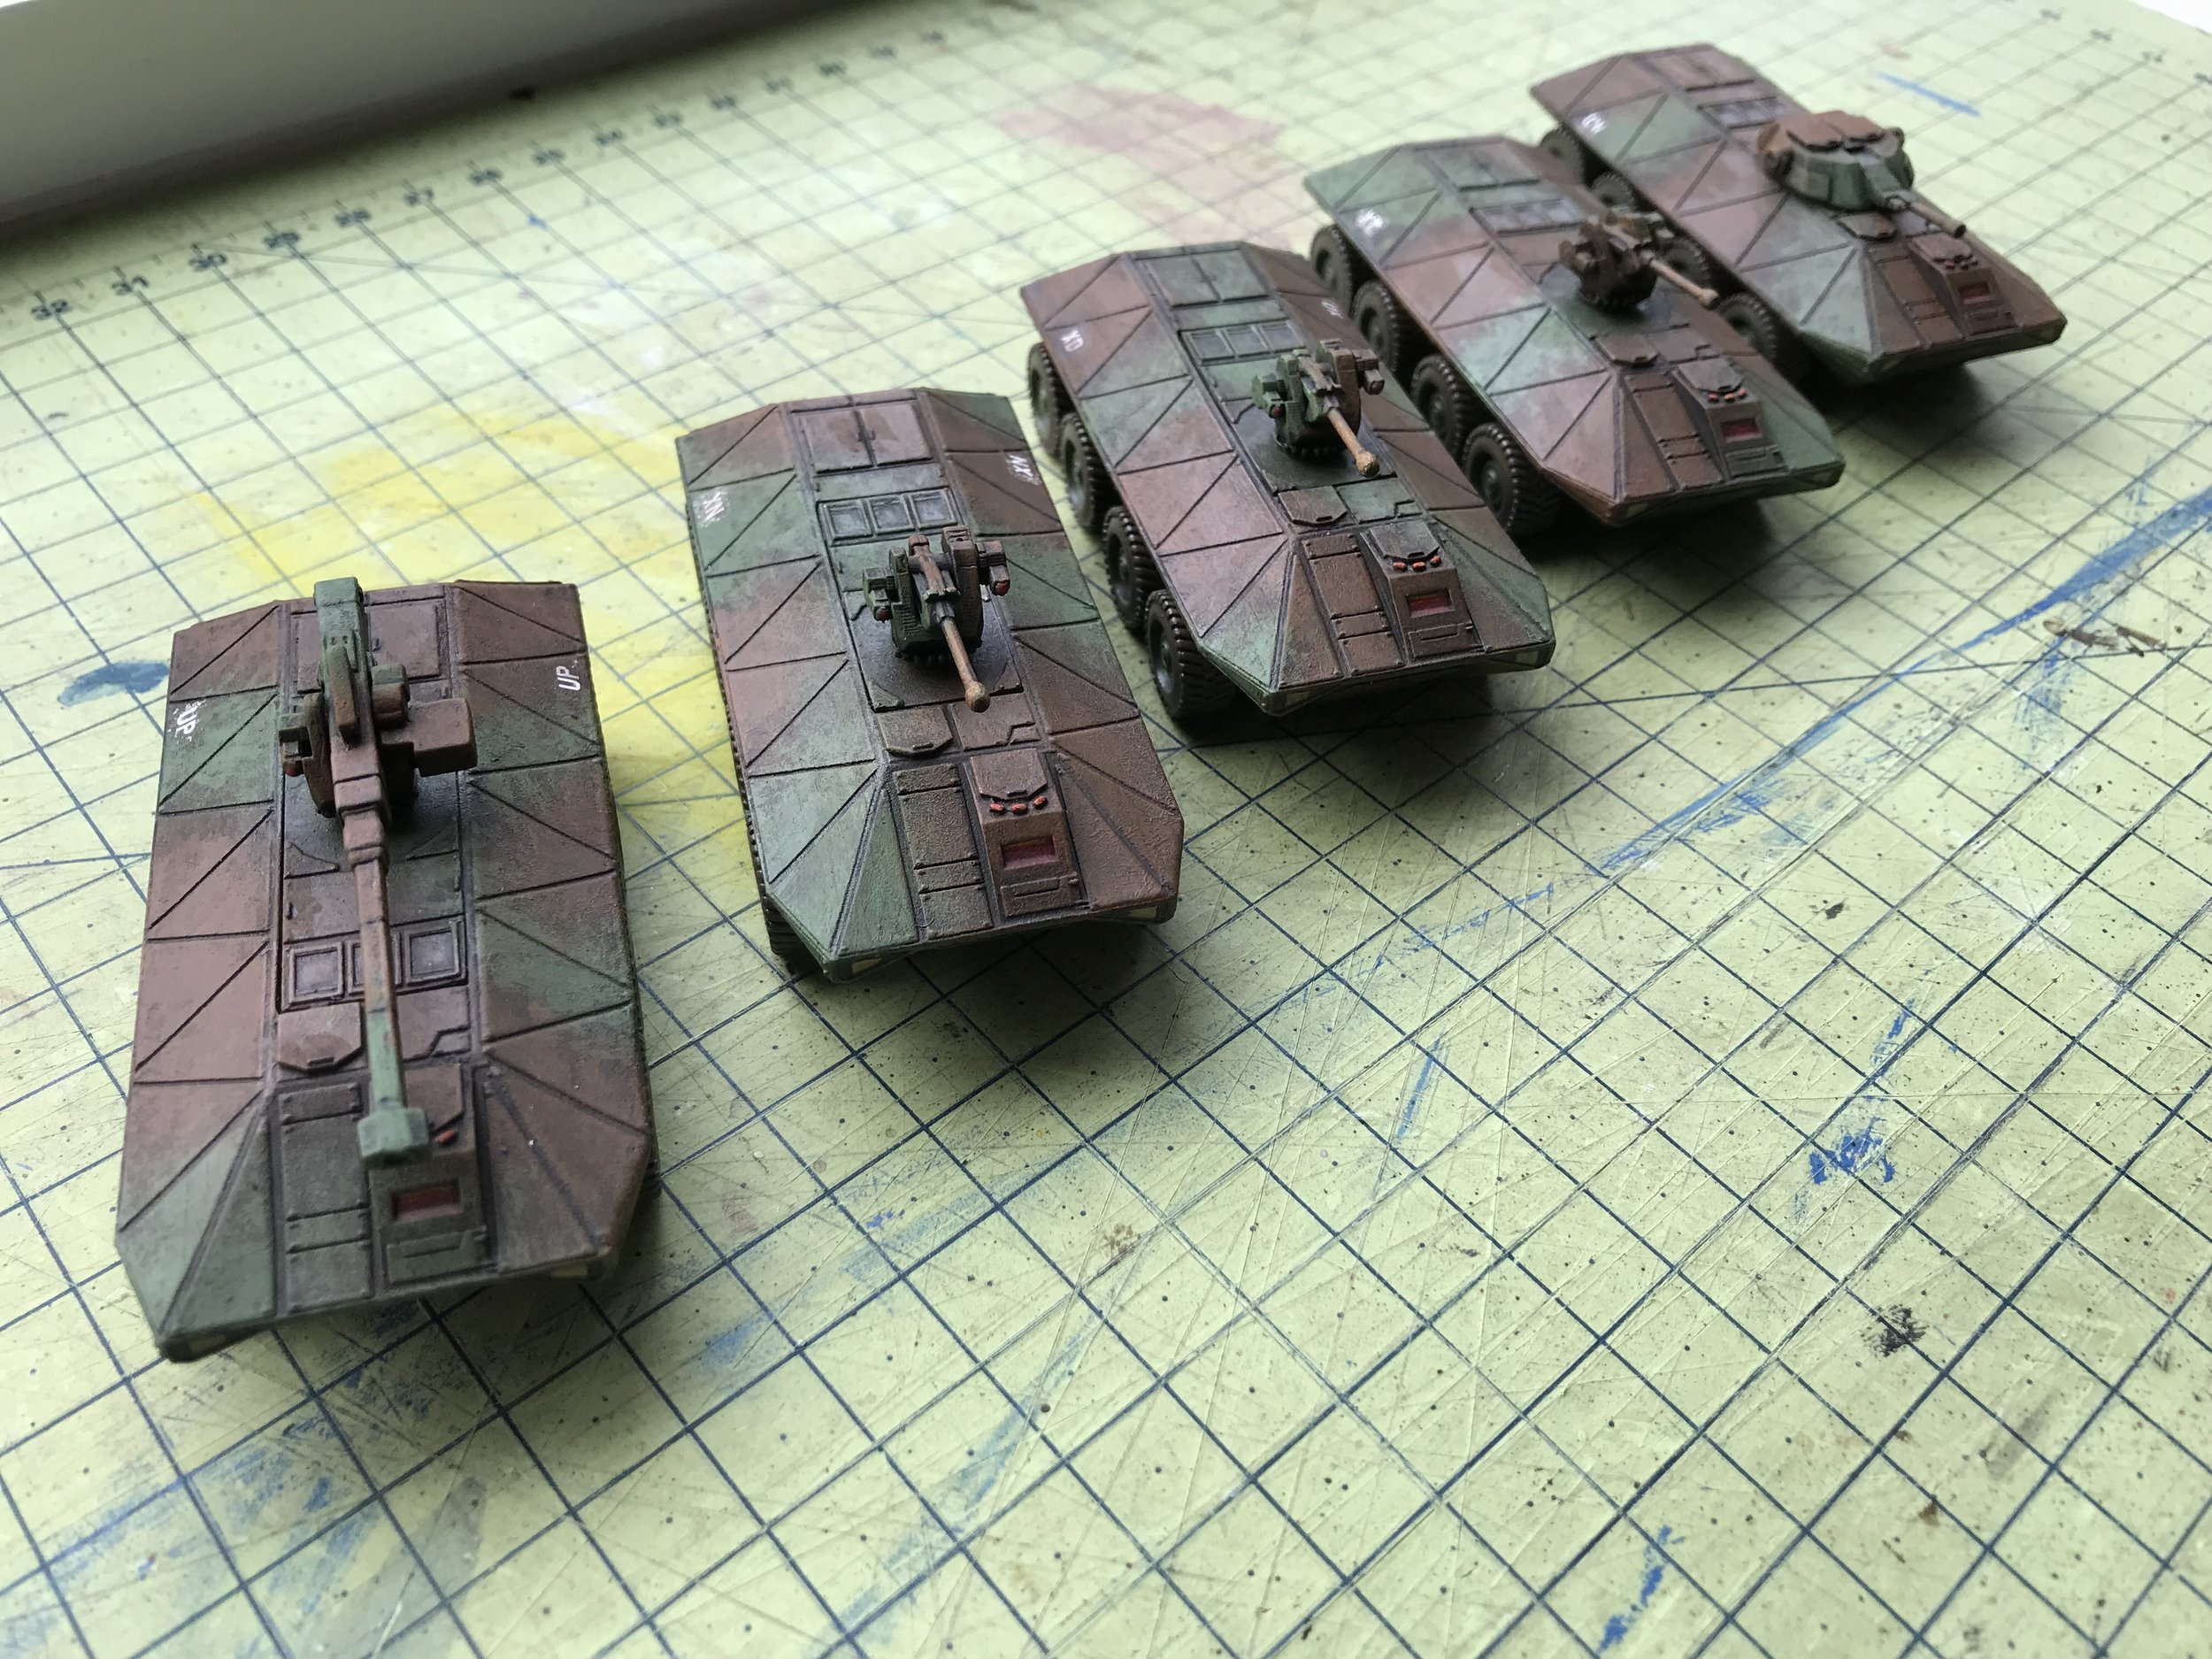 Sci-Fi Tanks from Ralph